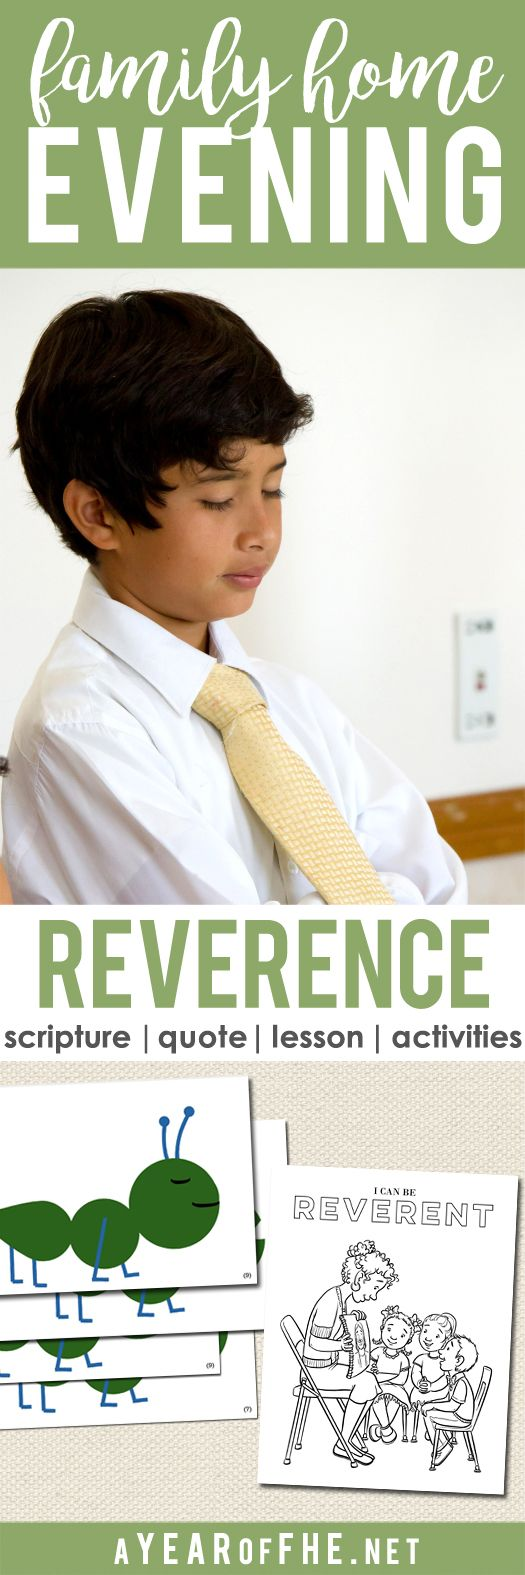 10413 Best Images About LDS On Pinterest